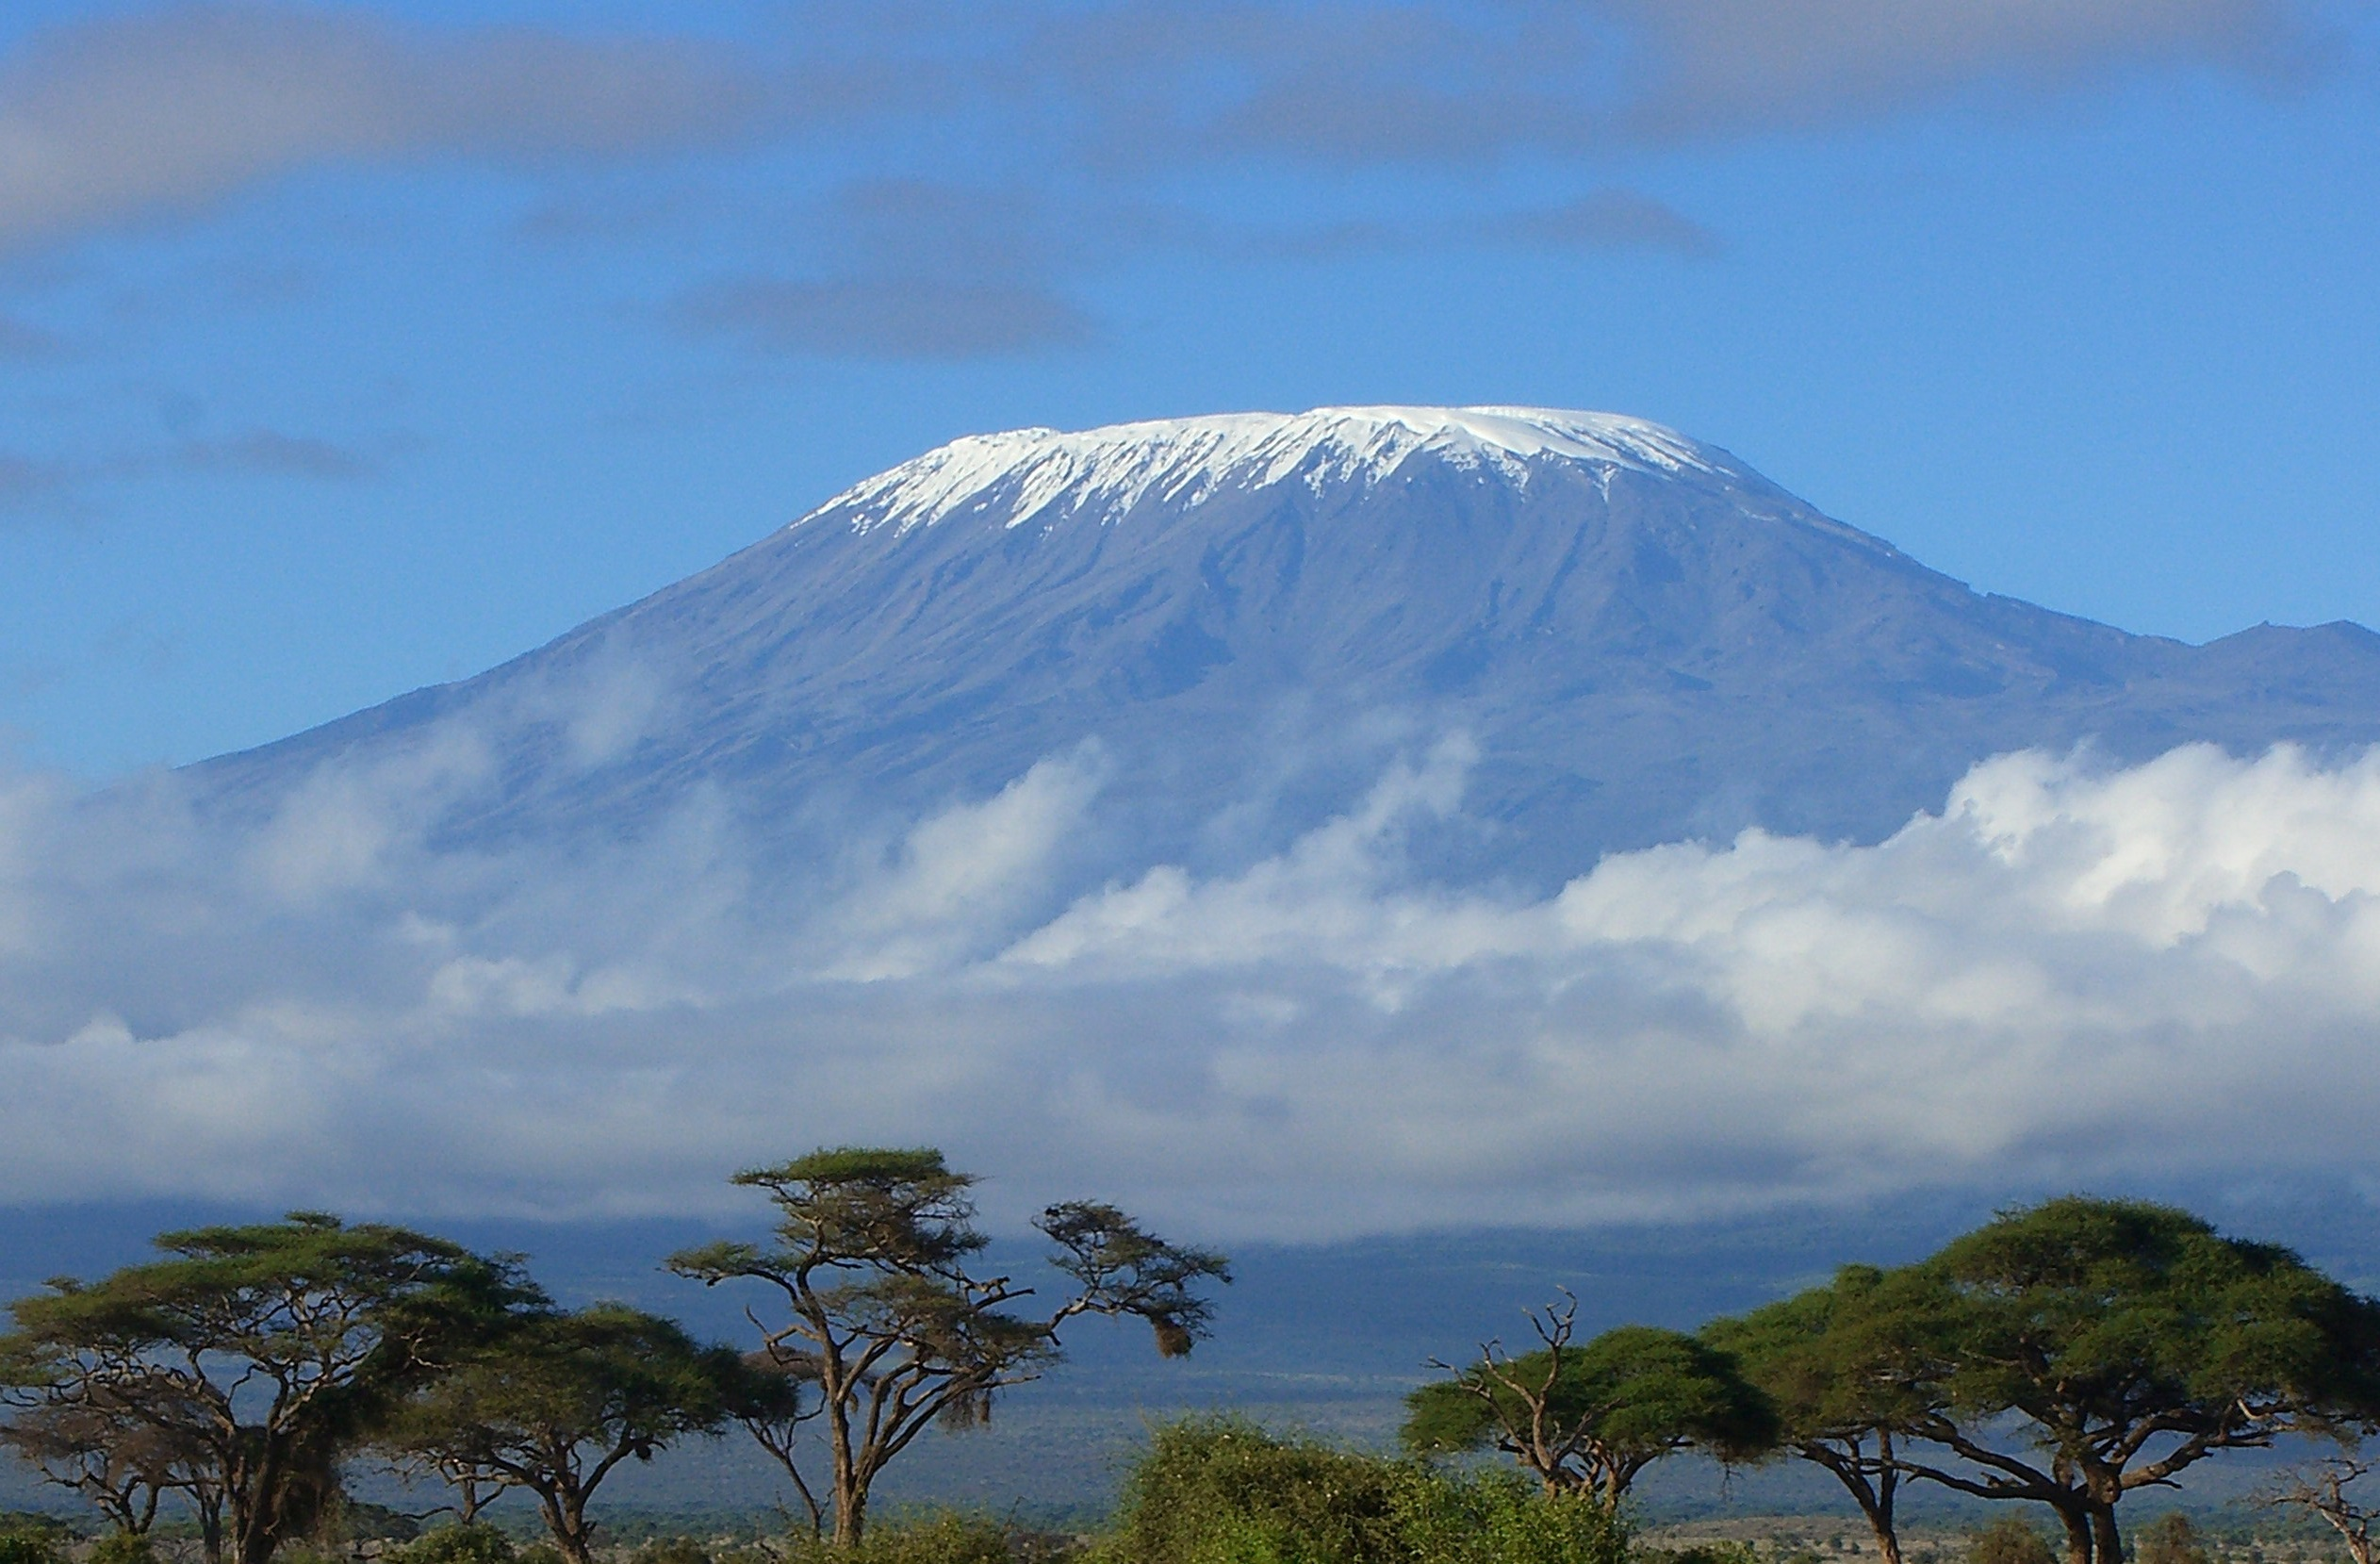 Mountain Kilimanjaro Hd Background